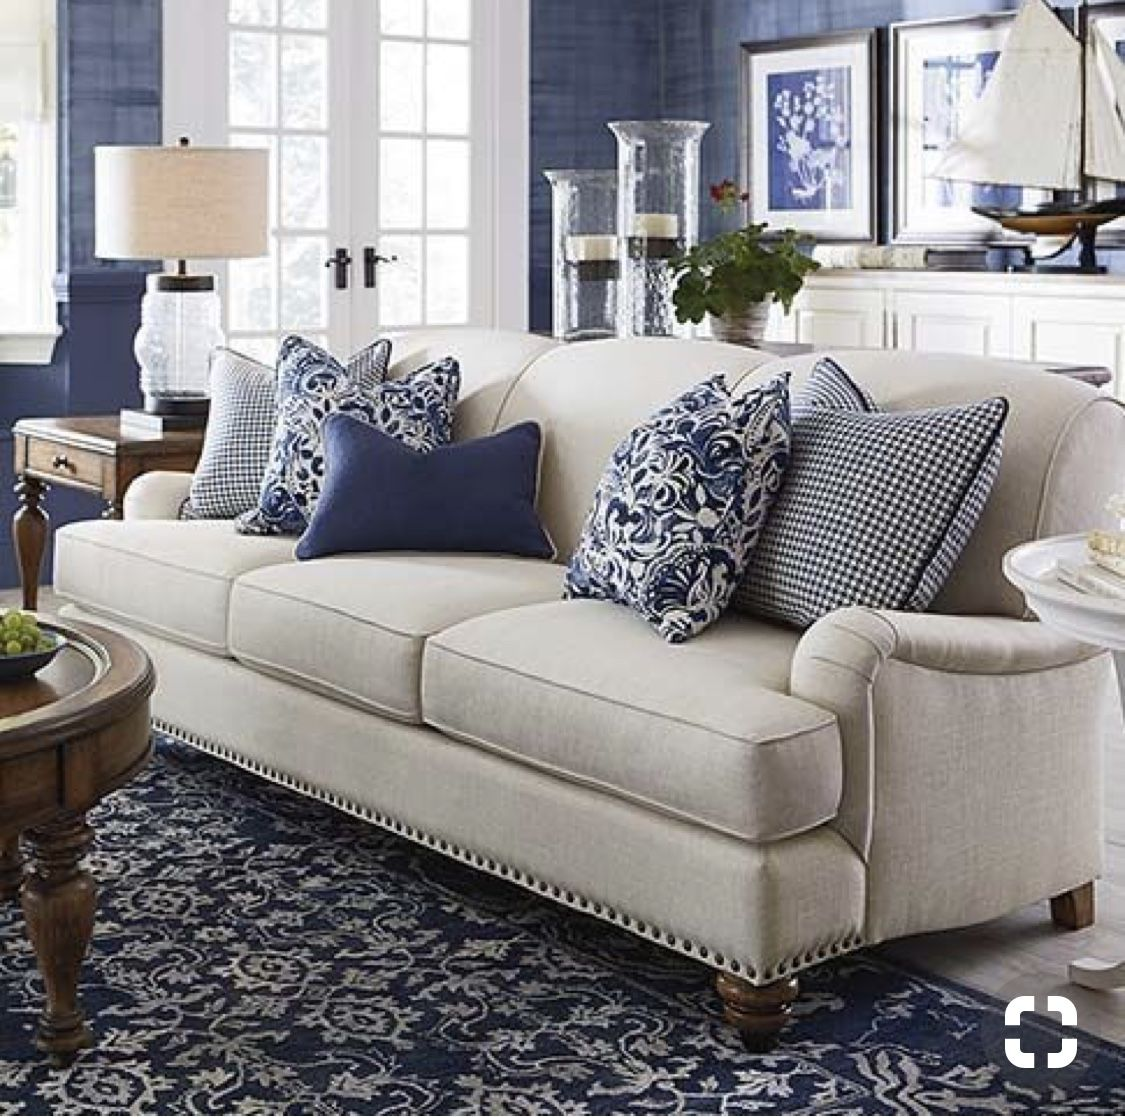 Pin By Jessica Daly On Homes Blue Living Room Living Room Decor Inspiration Blue And White Living Room